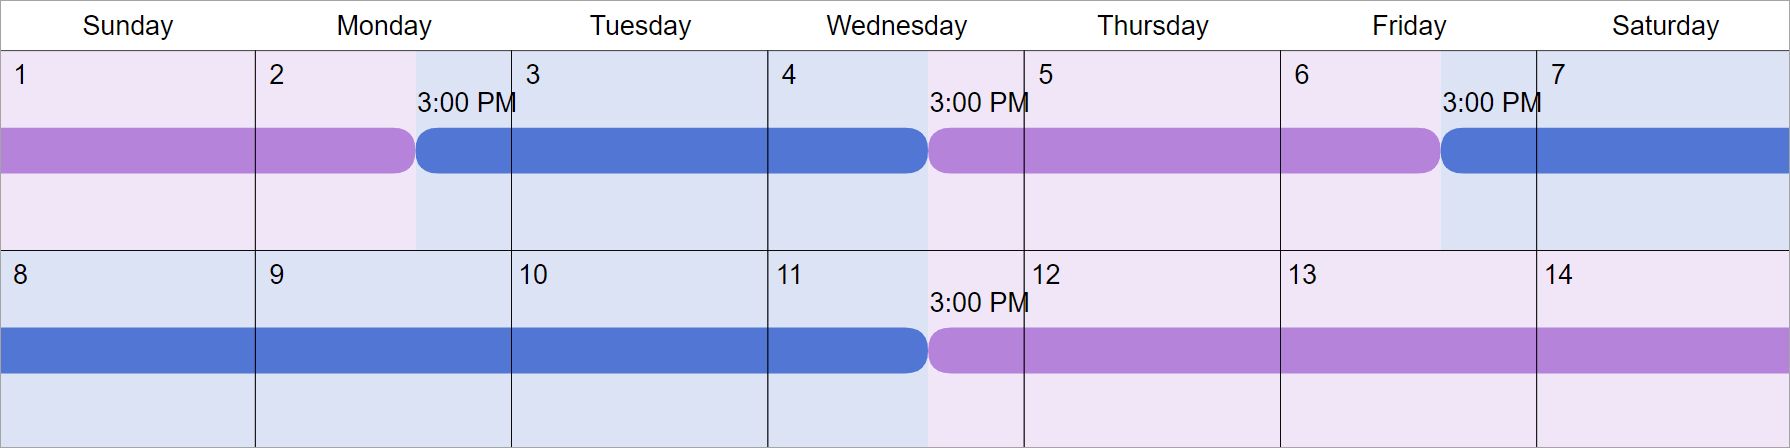 2-2-5-5 Visitation Schedule Examples: How Does It Work?